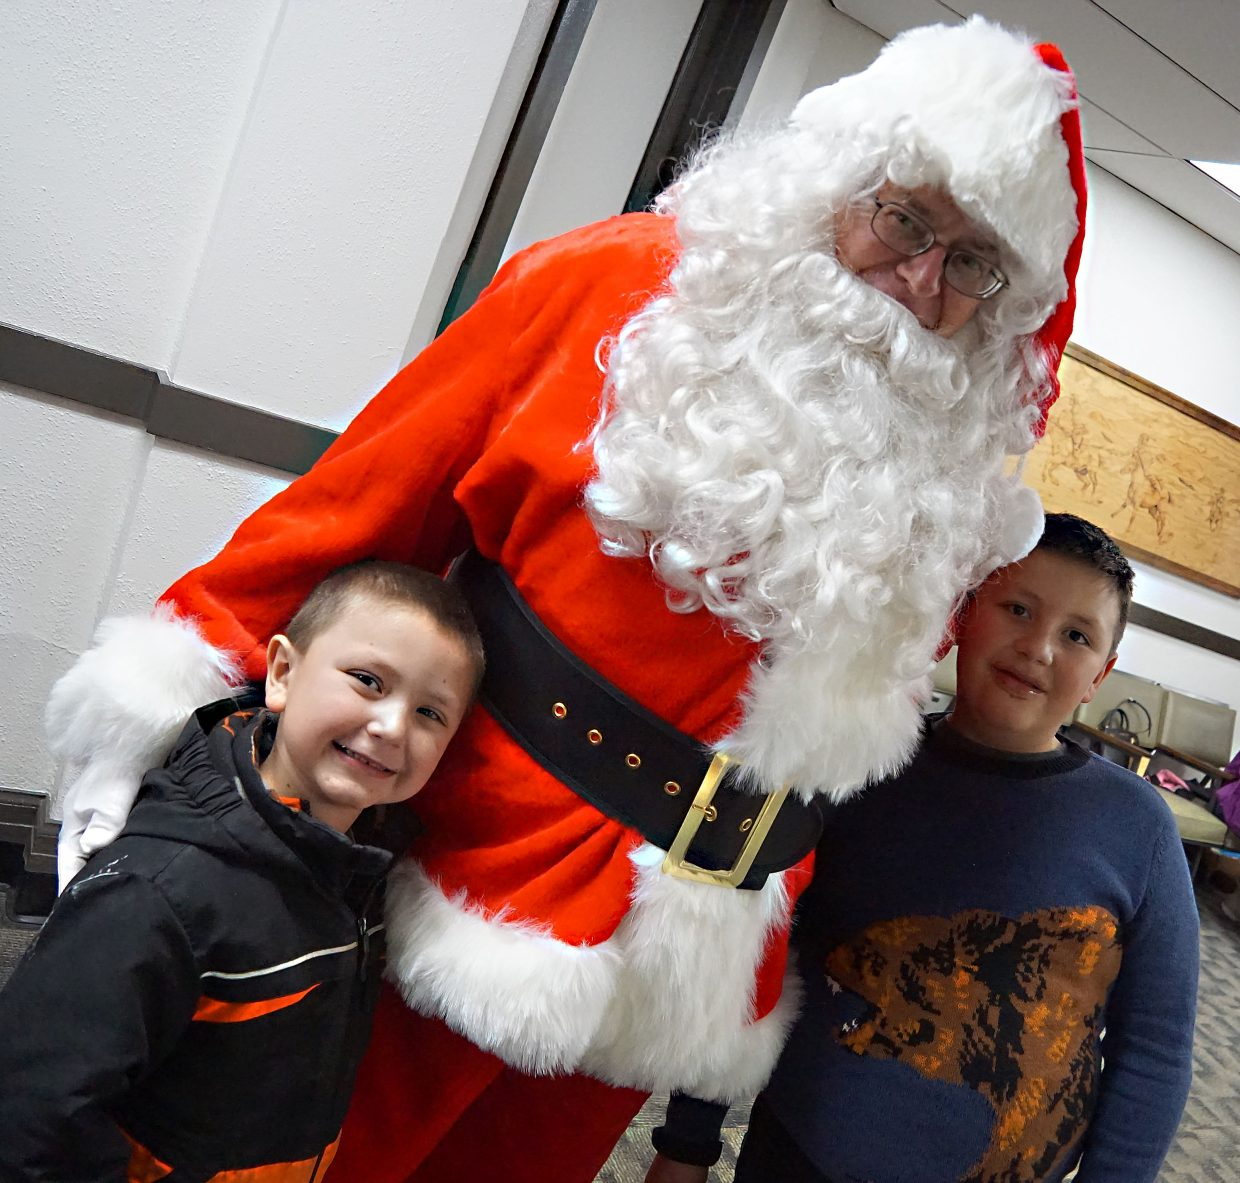 Zachariah Vesely, 6, and Ryan Vesely, 9, sandwich Santa with a Christmas-sized hug.